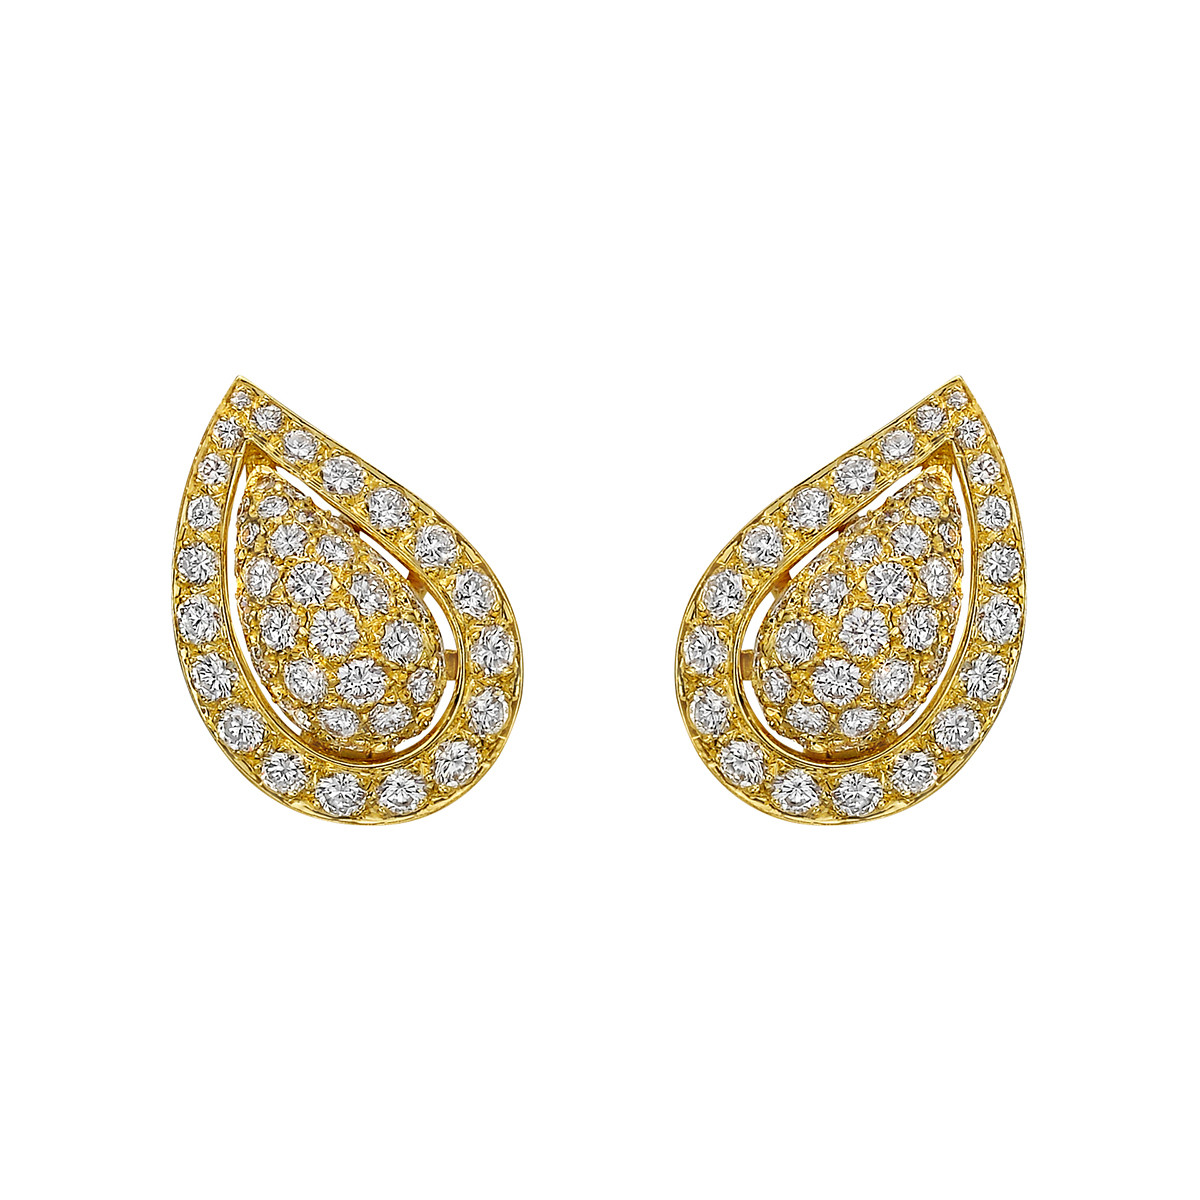 18k Yellow Gold & Diamond Teardrop Earclips